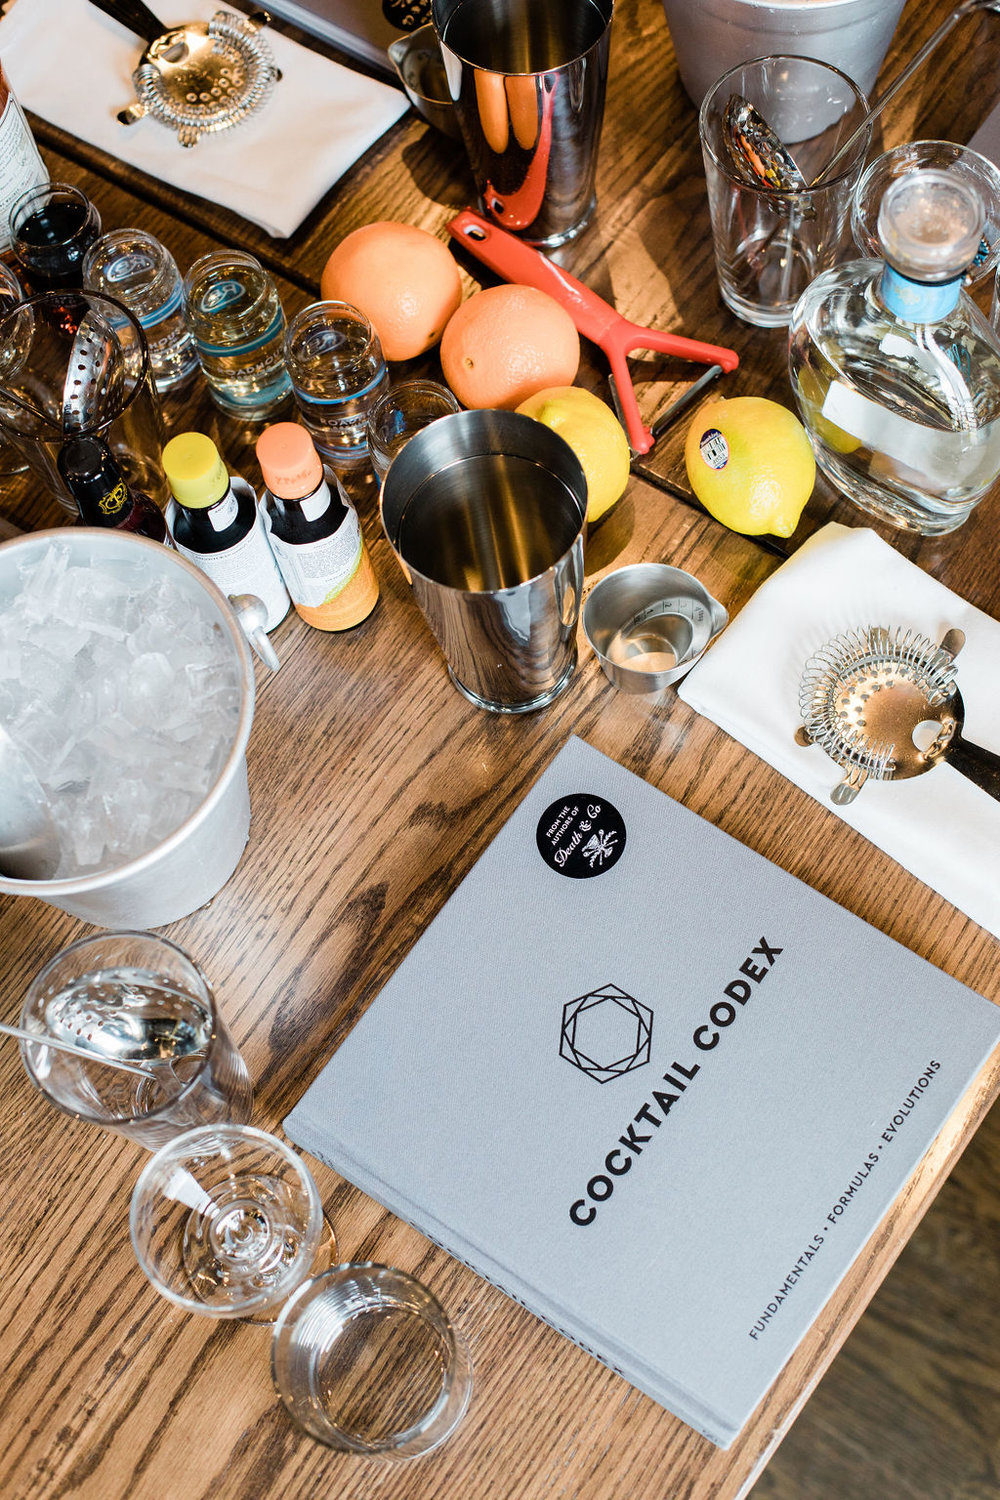 At this past winter's festival, guests learned how to whip up cocktails with Alex Day, owner of Death & Co.